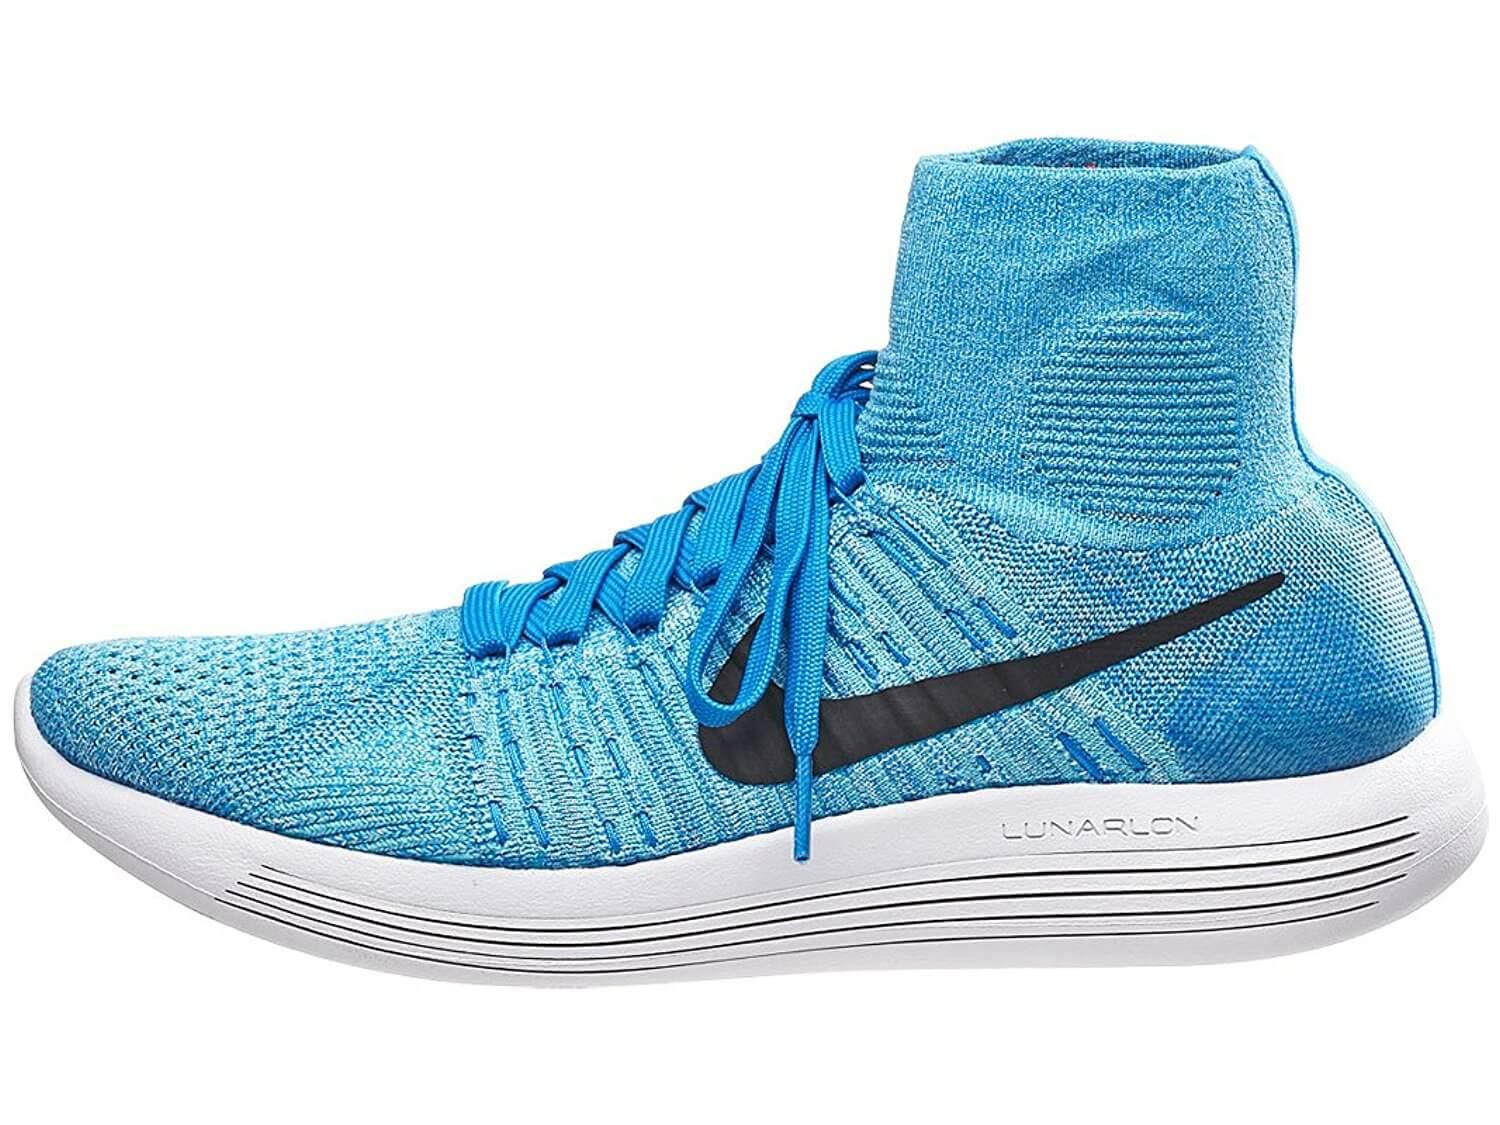 The higher ankle covering offers more style options for the Nike LunarEpic Flyknit.